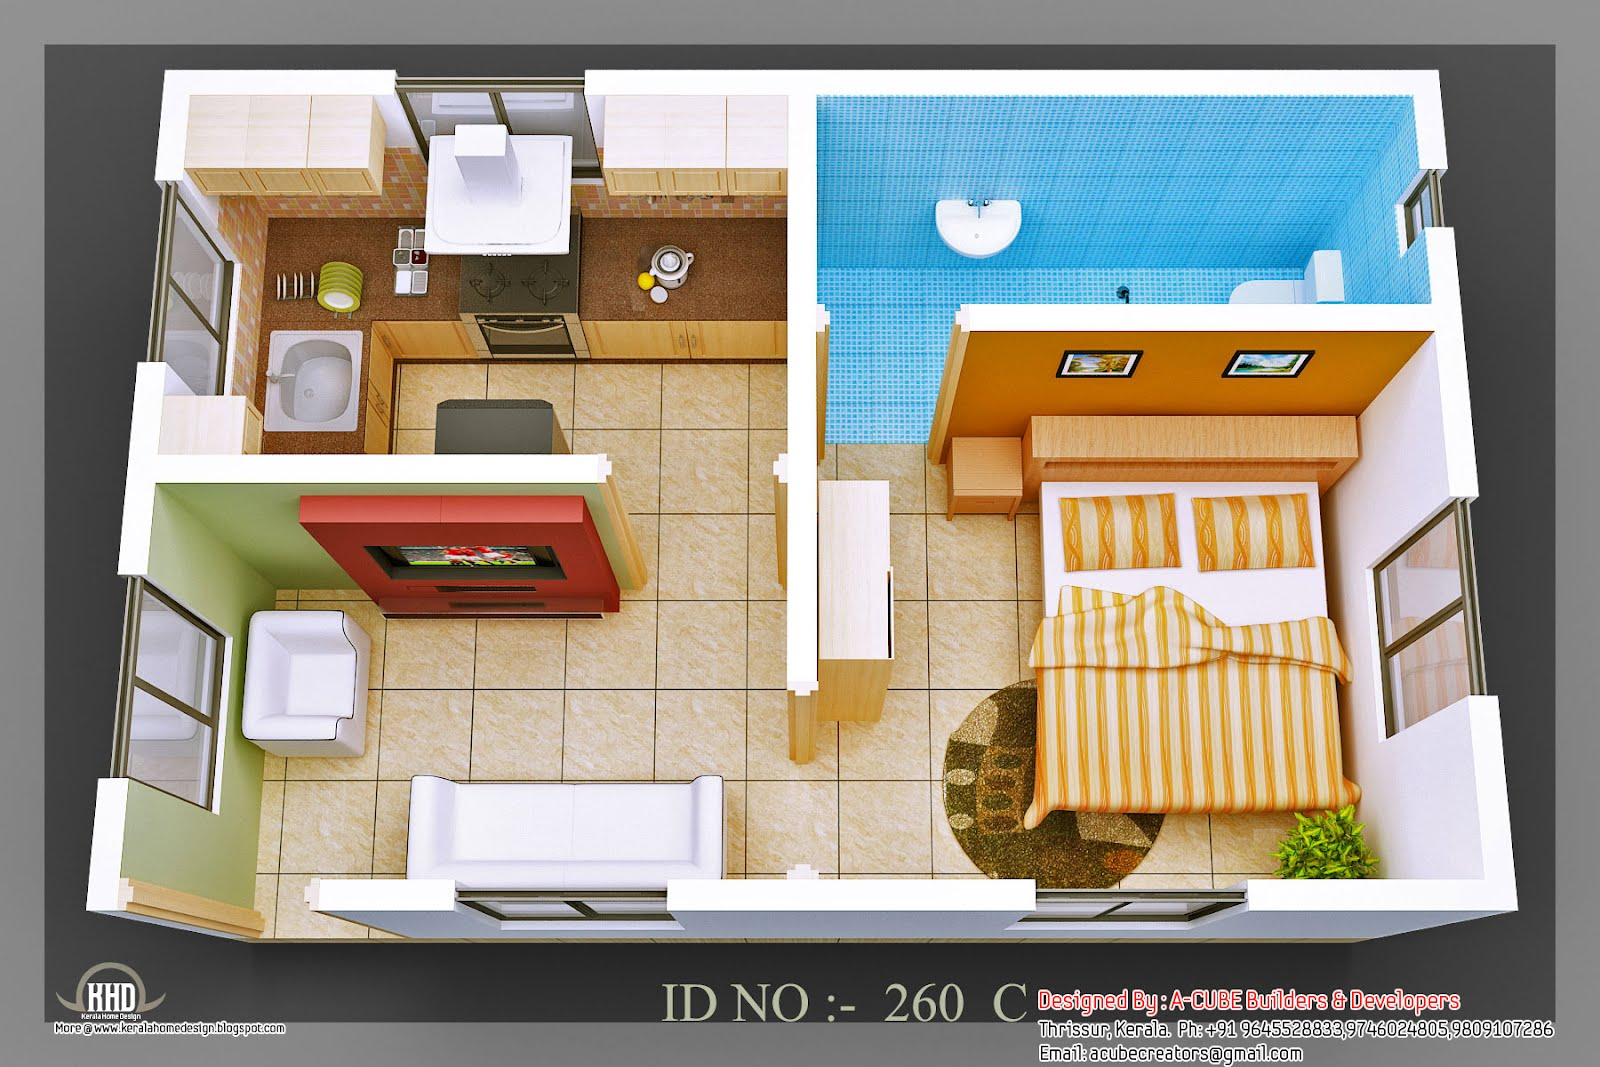 3d isometric views of small house plans kerala home design and floor